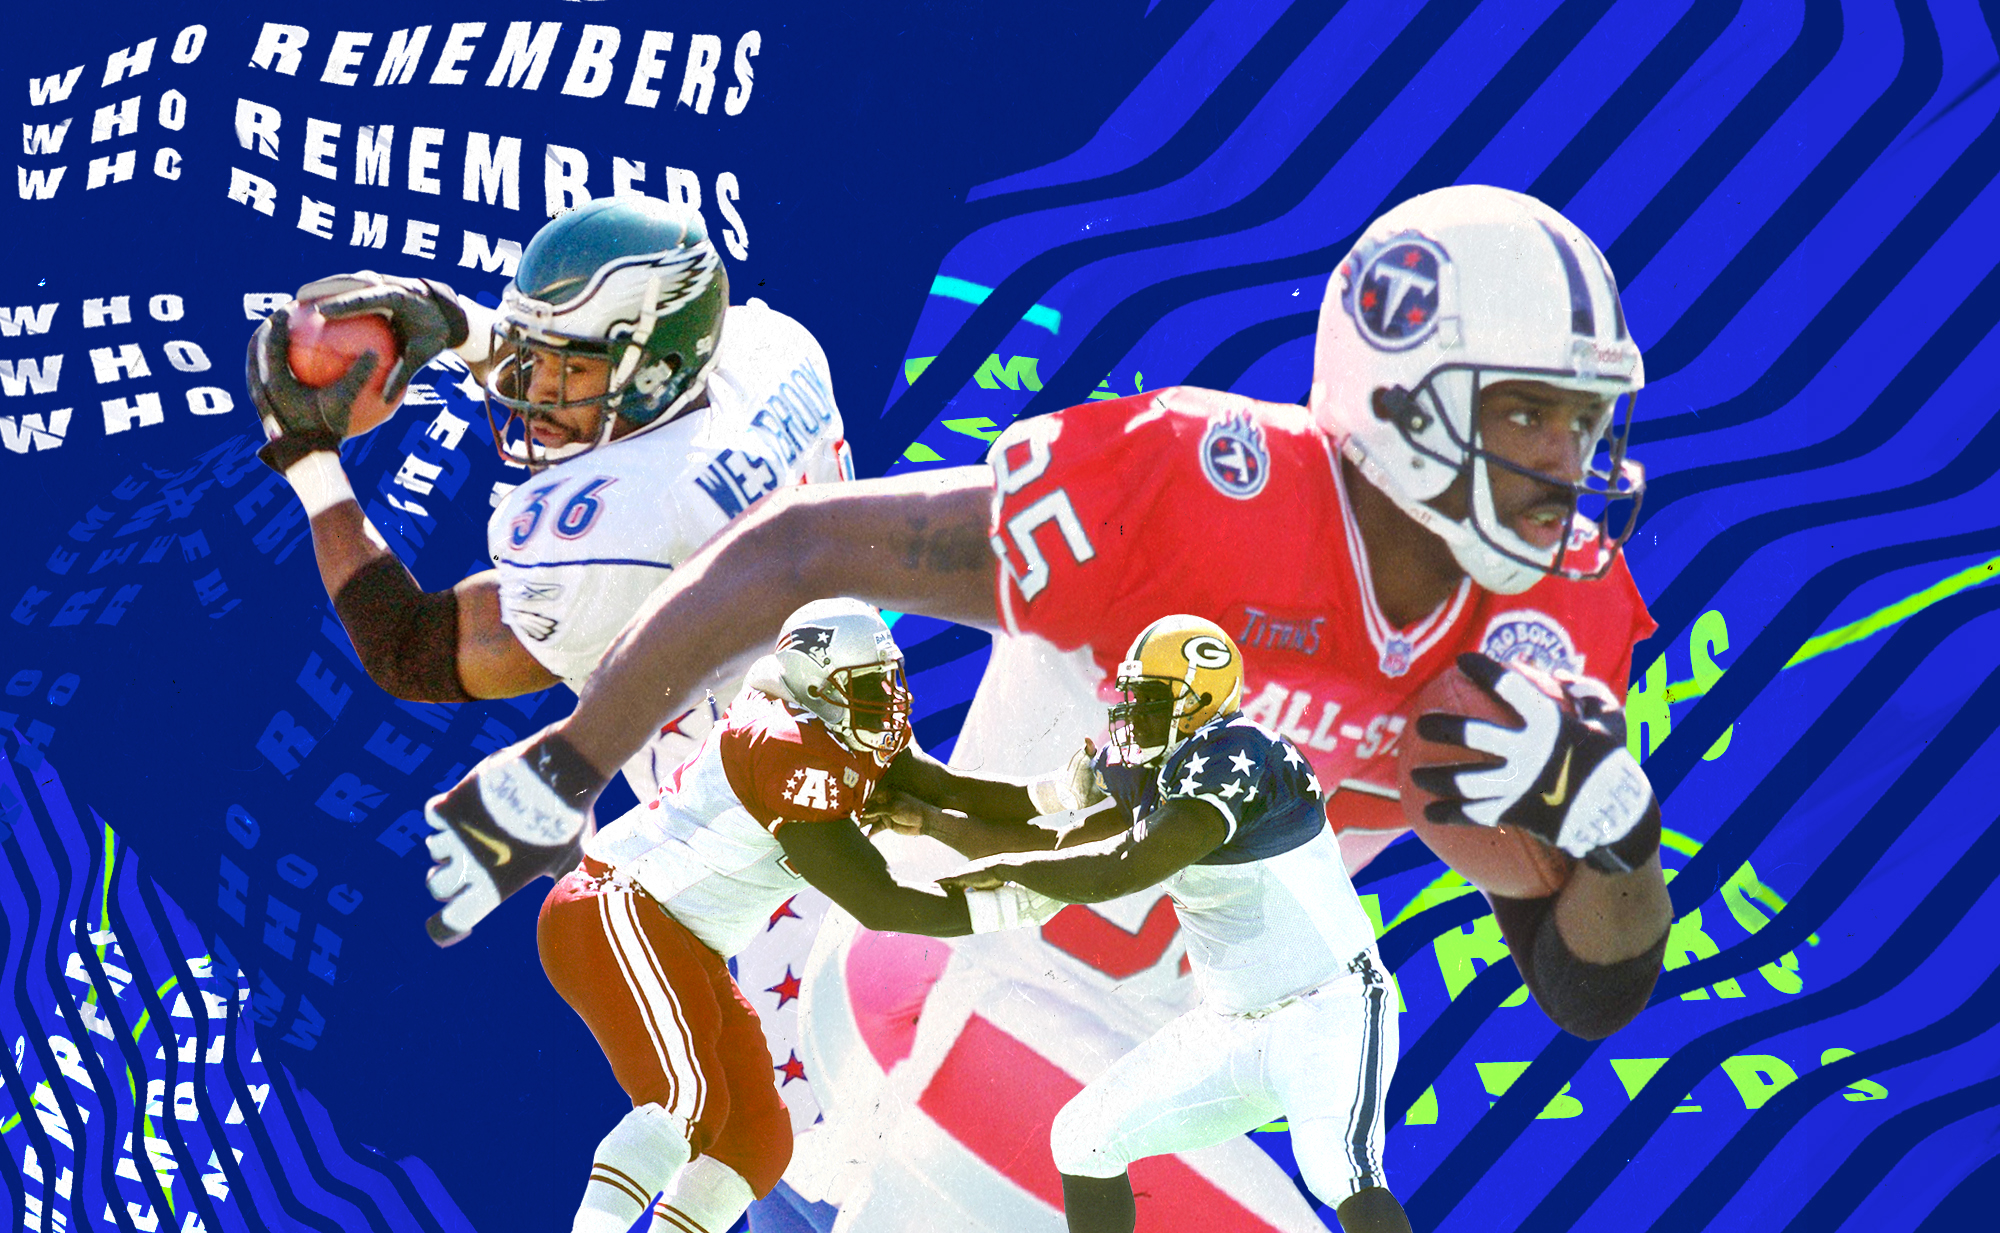 The Pro Bowl's greatest tradition is its perpetually gross uniforms